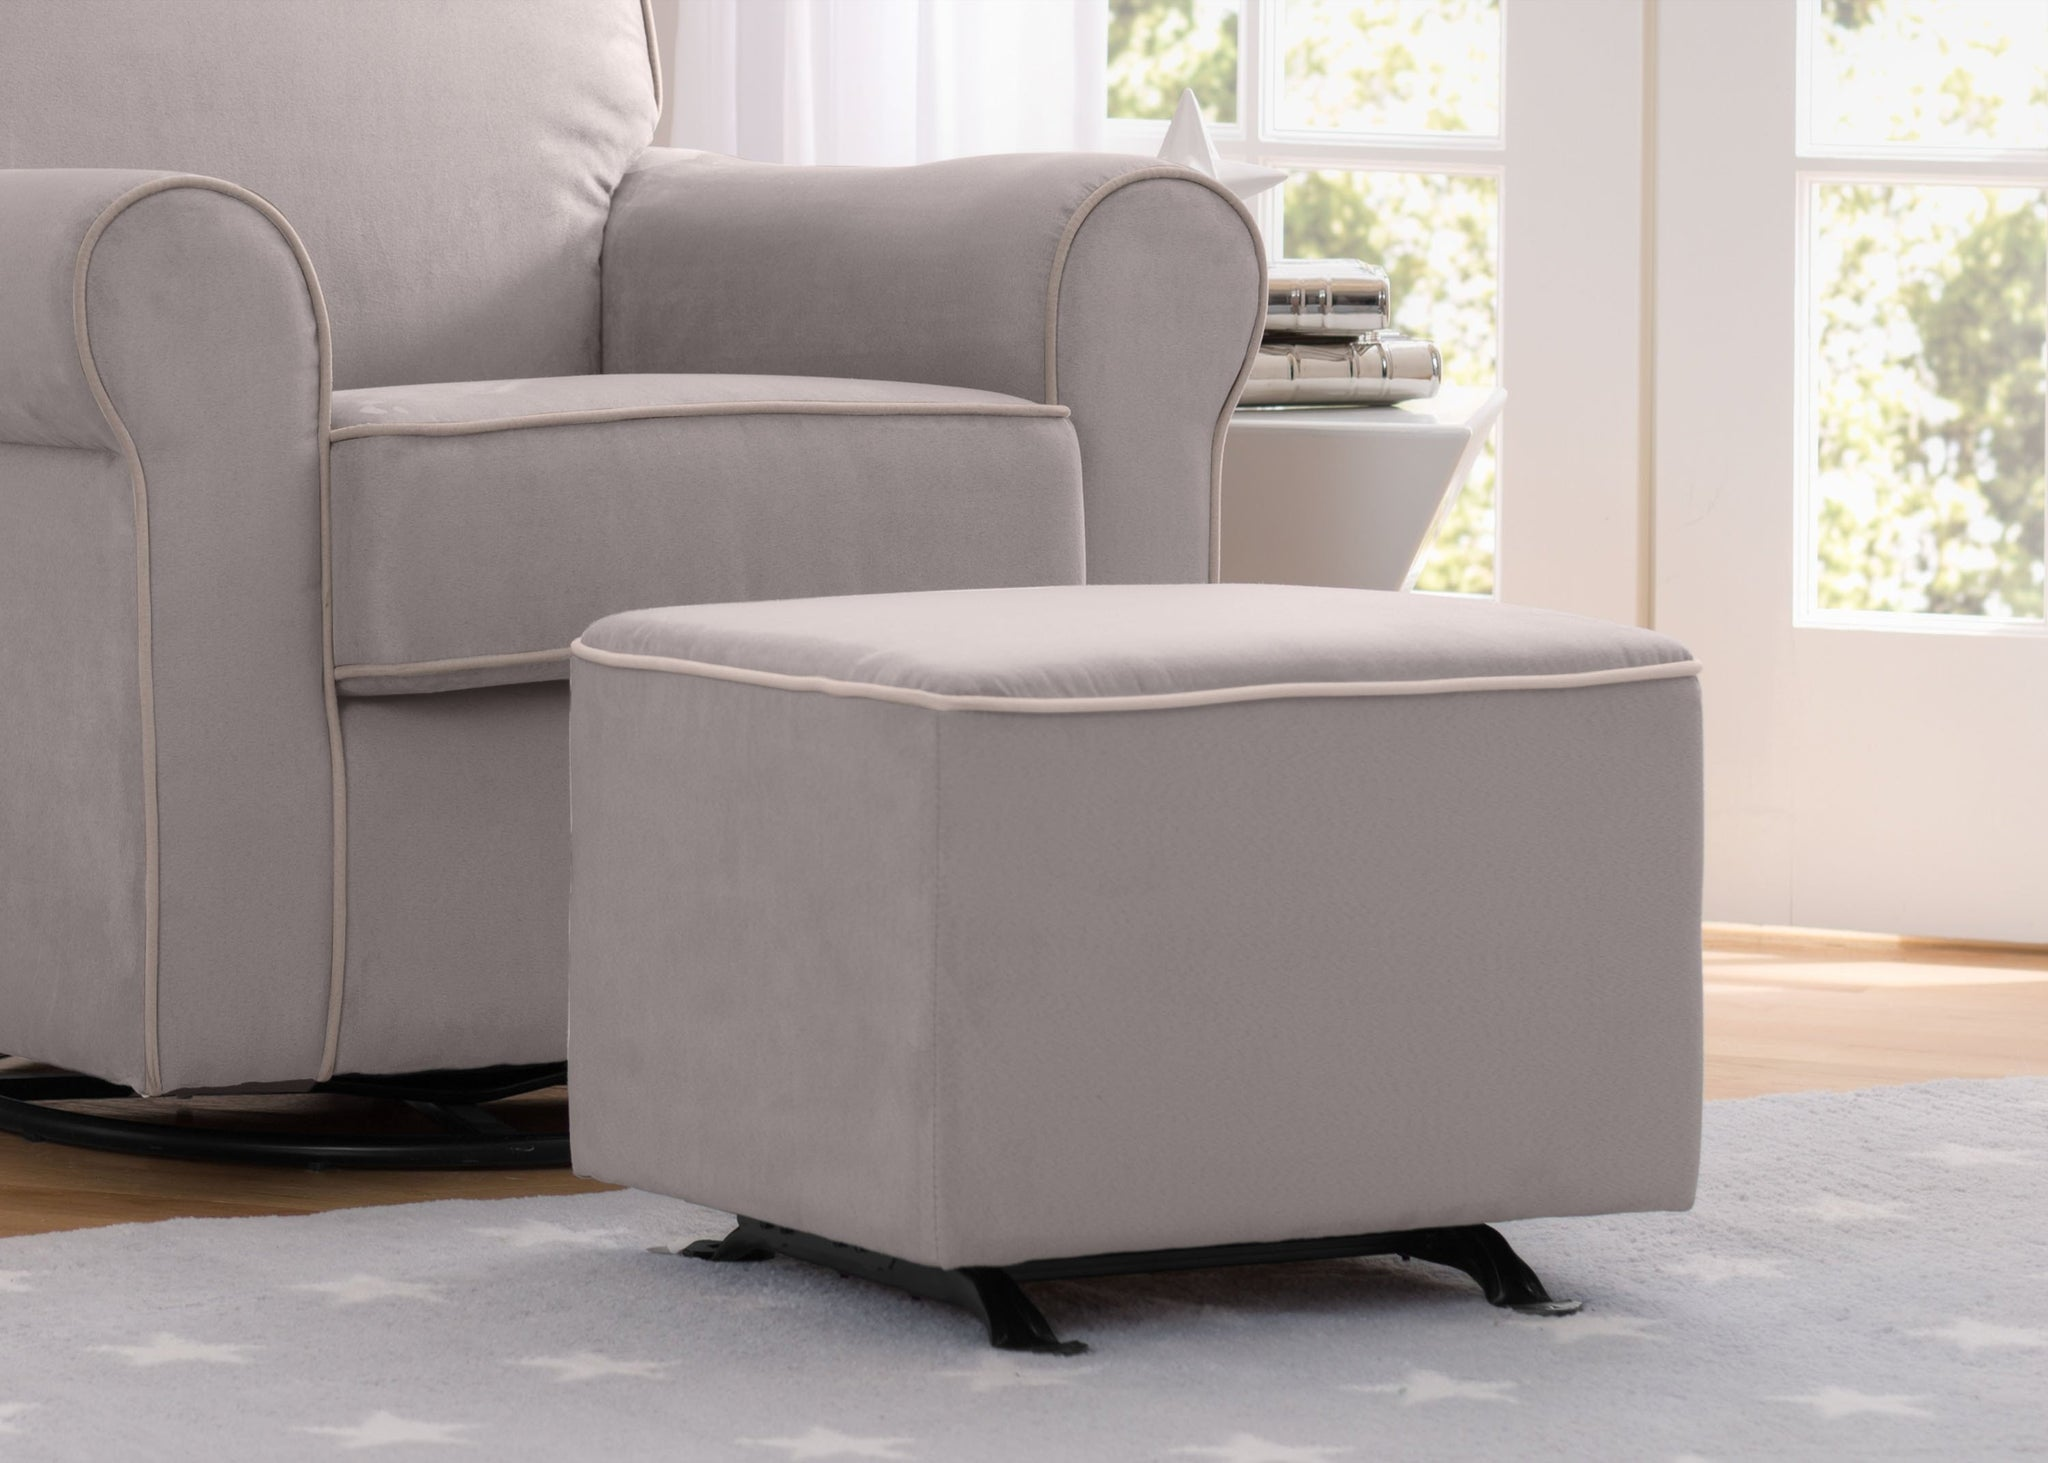 Delta Children Dove Grey with Soft Grey Welt (036) Nursery Gliding Ottoman (501220), Hangtag, b1b